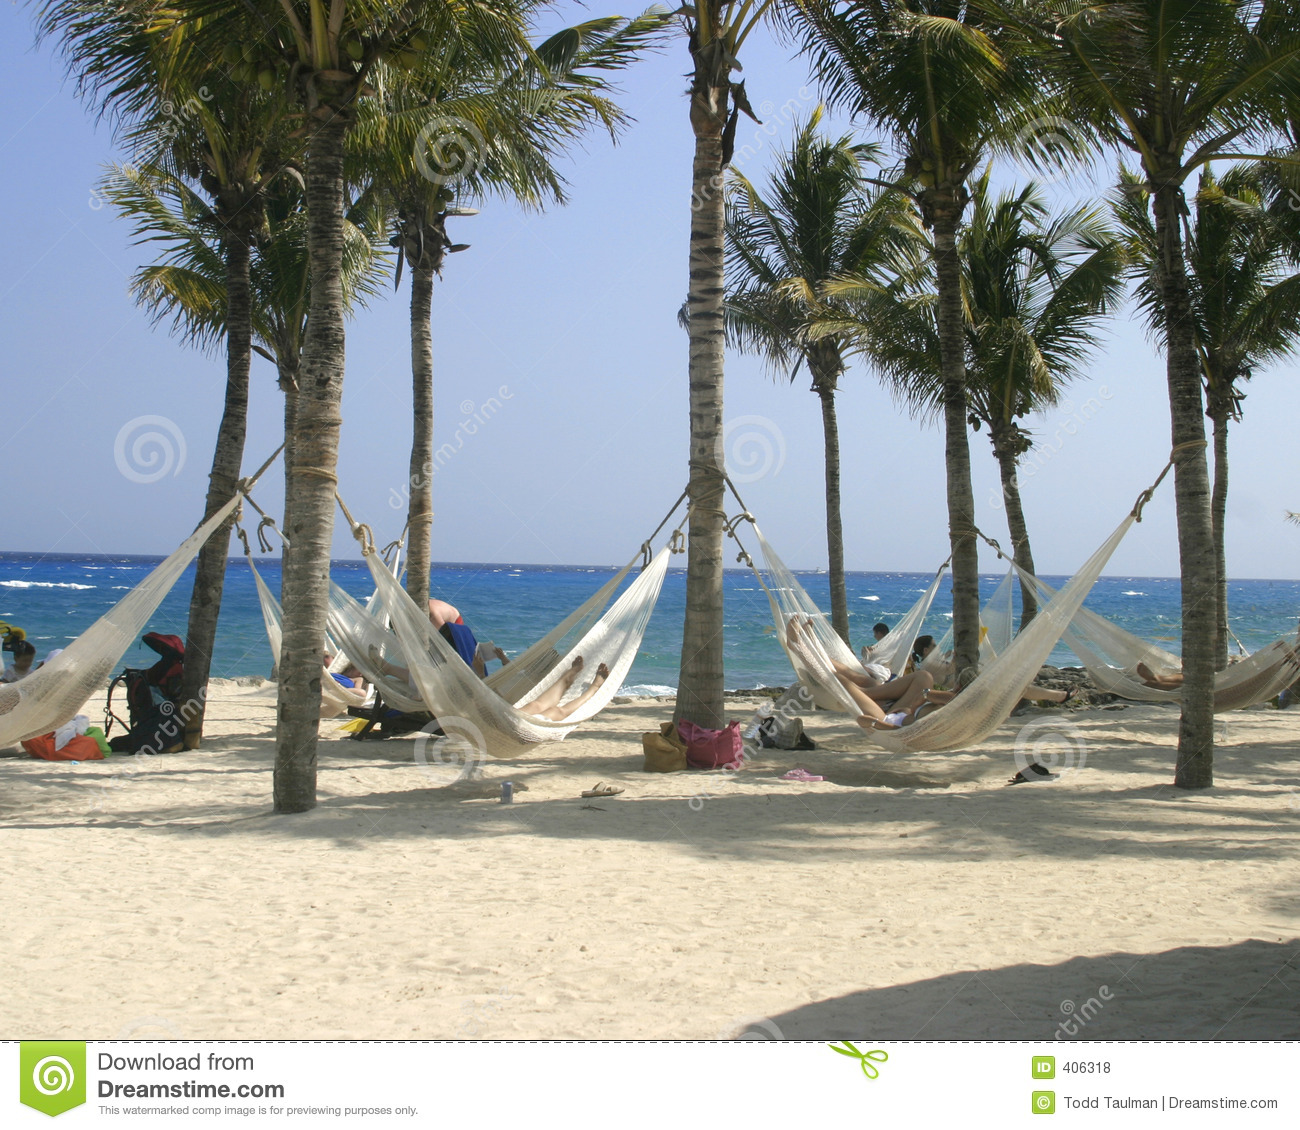 Hammocks on the beach attached to palm trees overlooking the ocean in ...